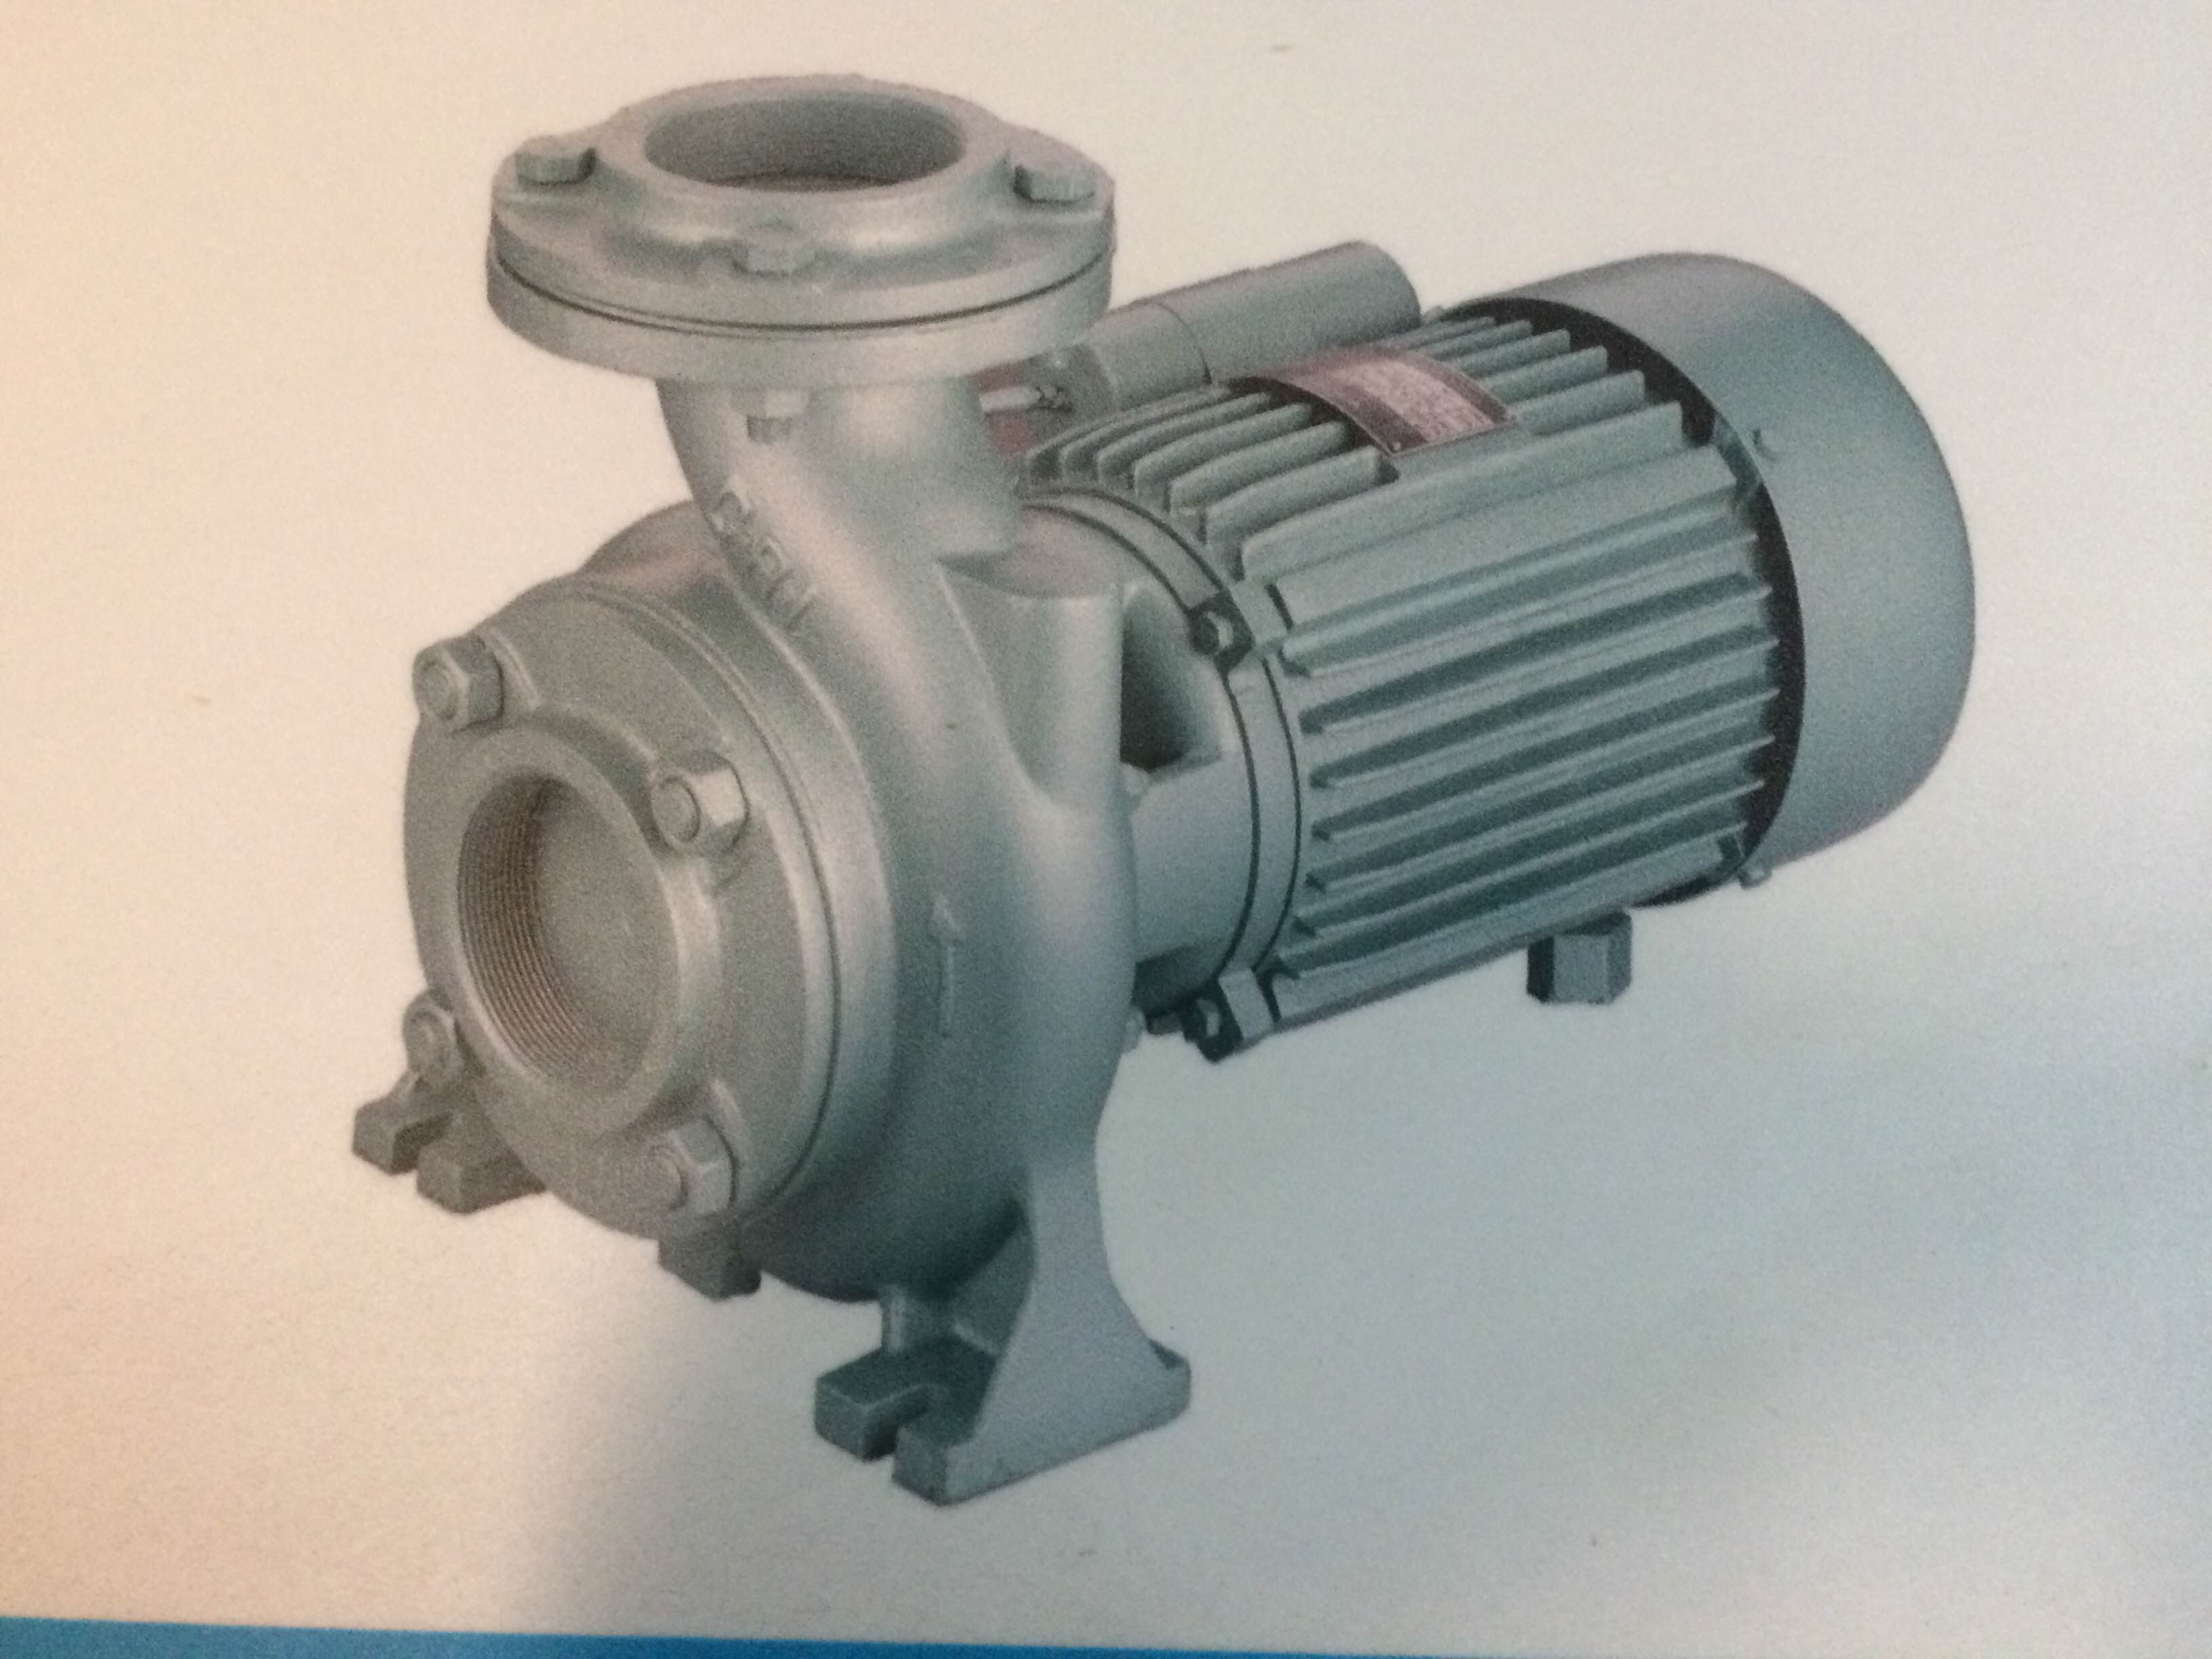 Monoblock pump dealers in ahmedabad   Anvi pumps is an aurthorised dealers of CRI pumps offering various ranges of pumps to their customers through Gujarat.